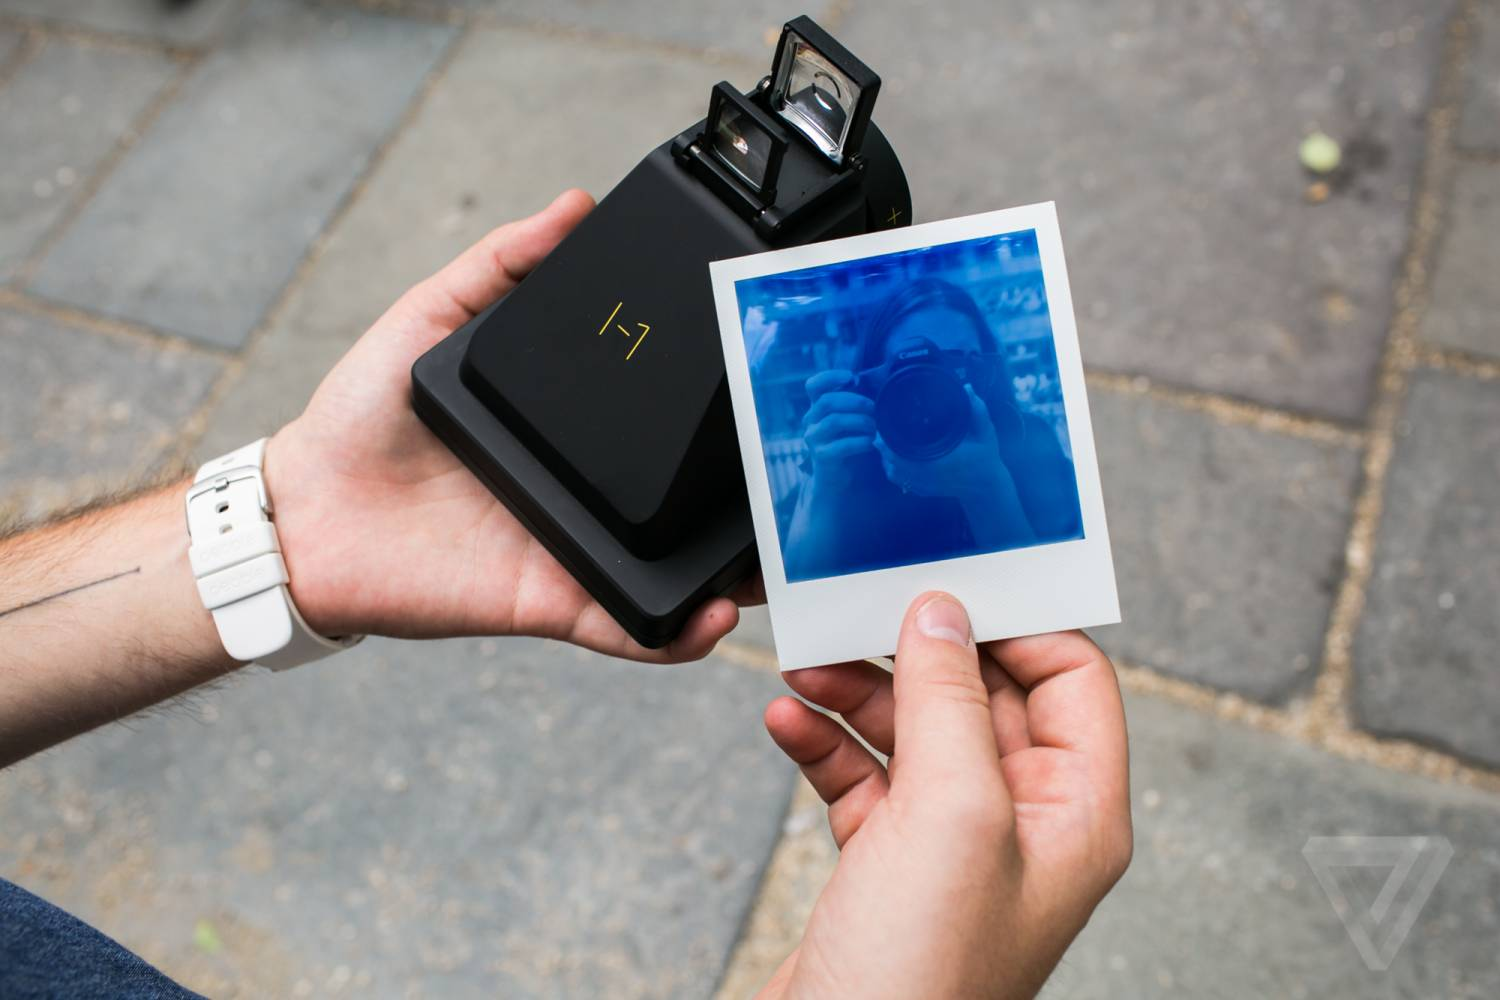 Обзор фотоаппарата Impossible I-1 The Instant Camera